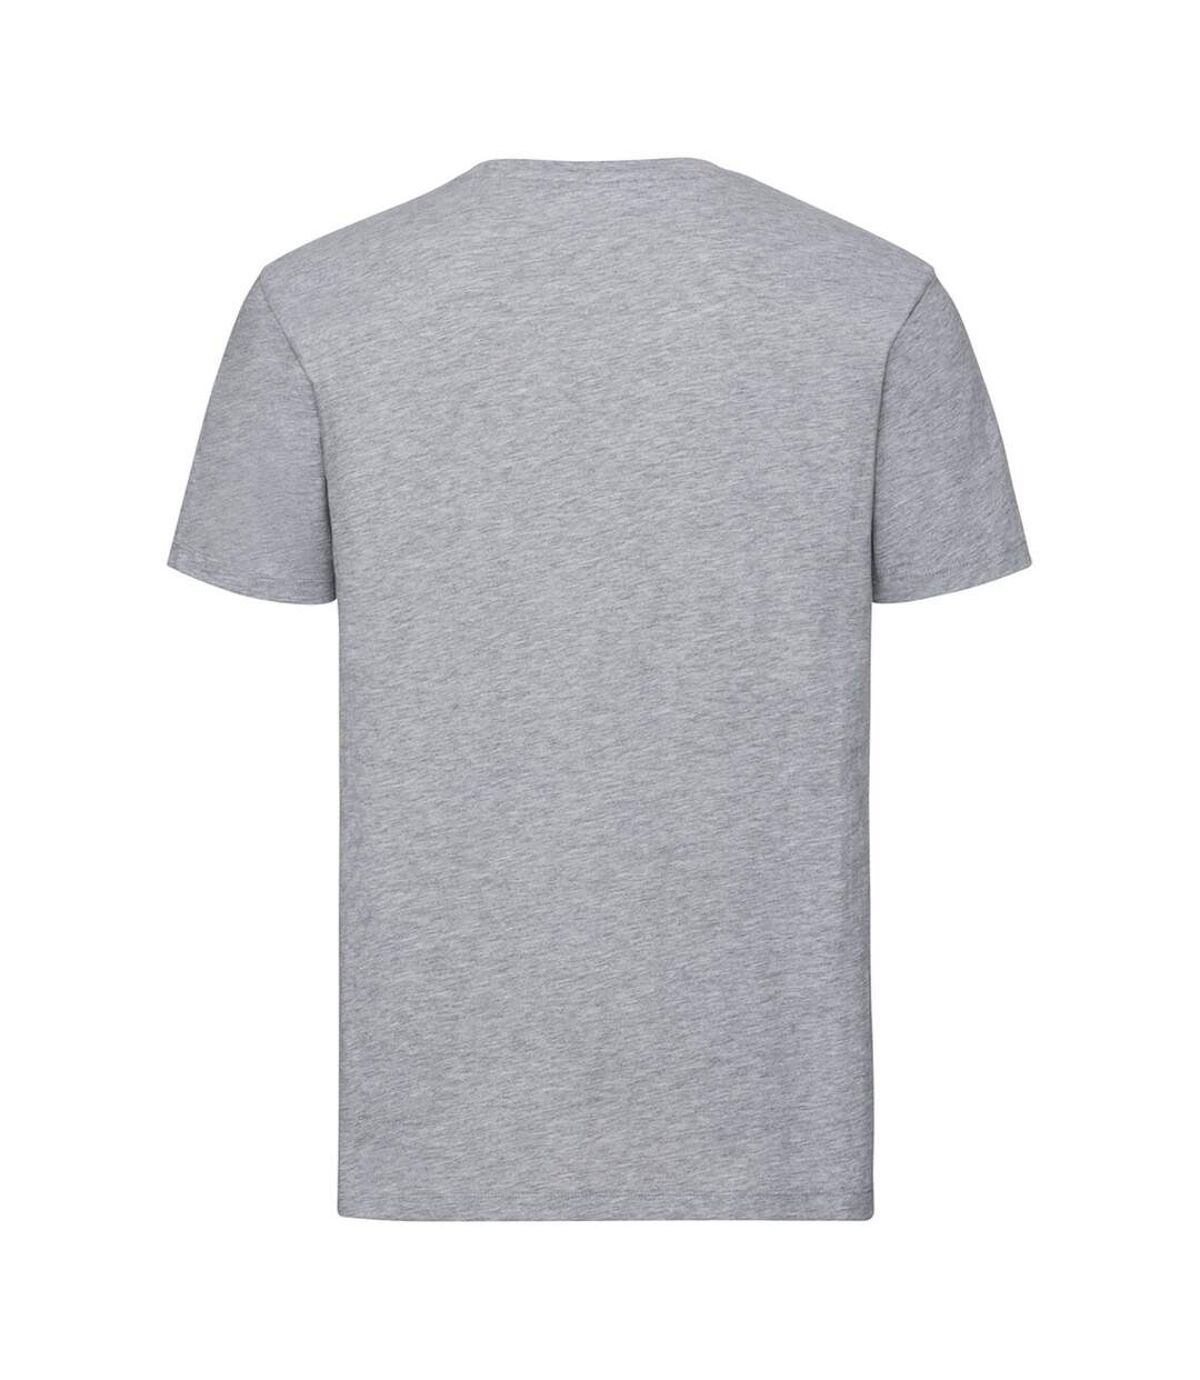 Russell - T-shirt manches courtes AUTHENTIC - Homme (Gris clair) - UTPC3569